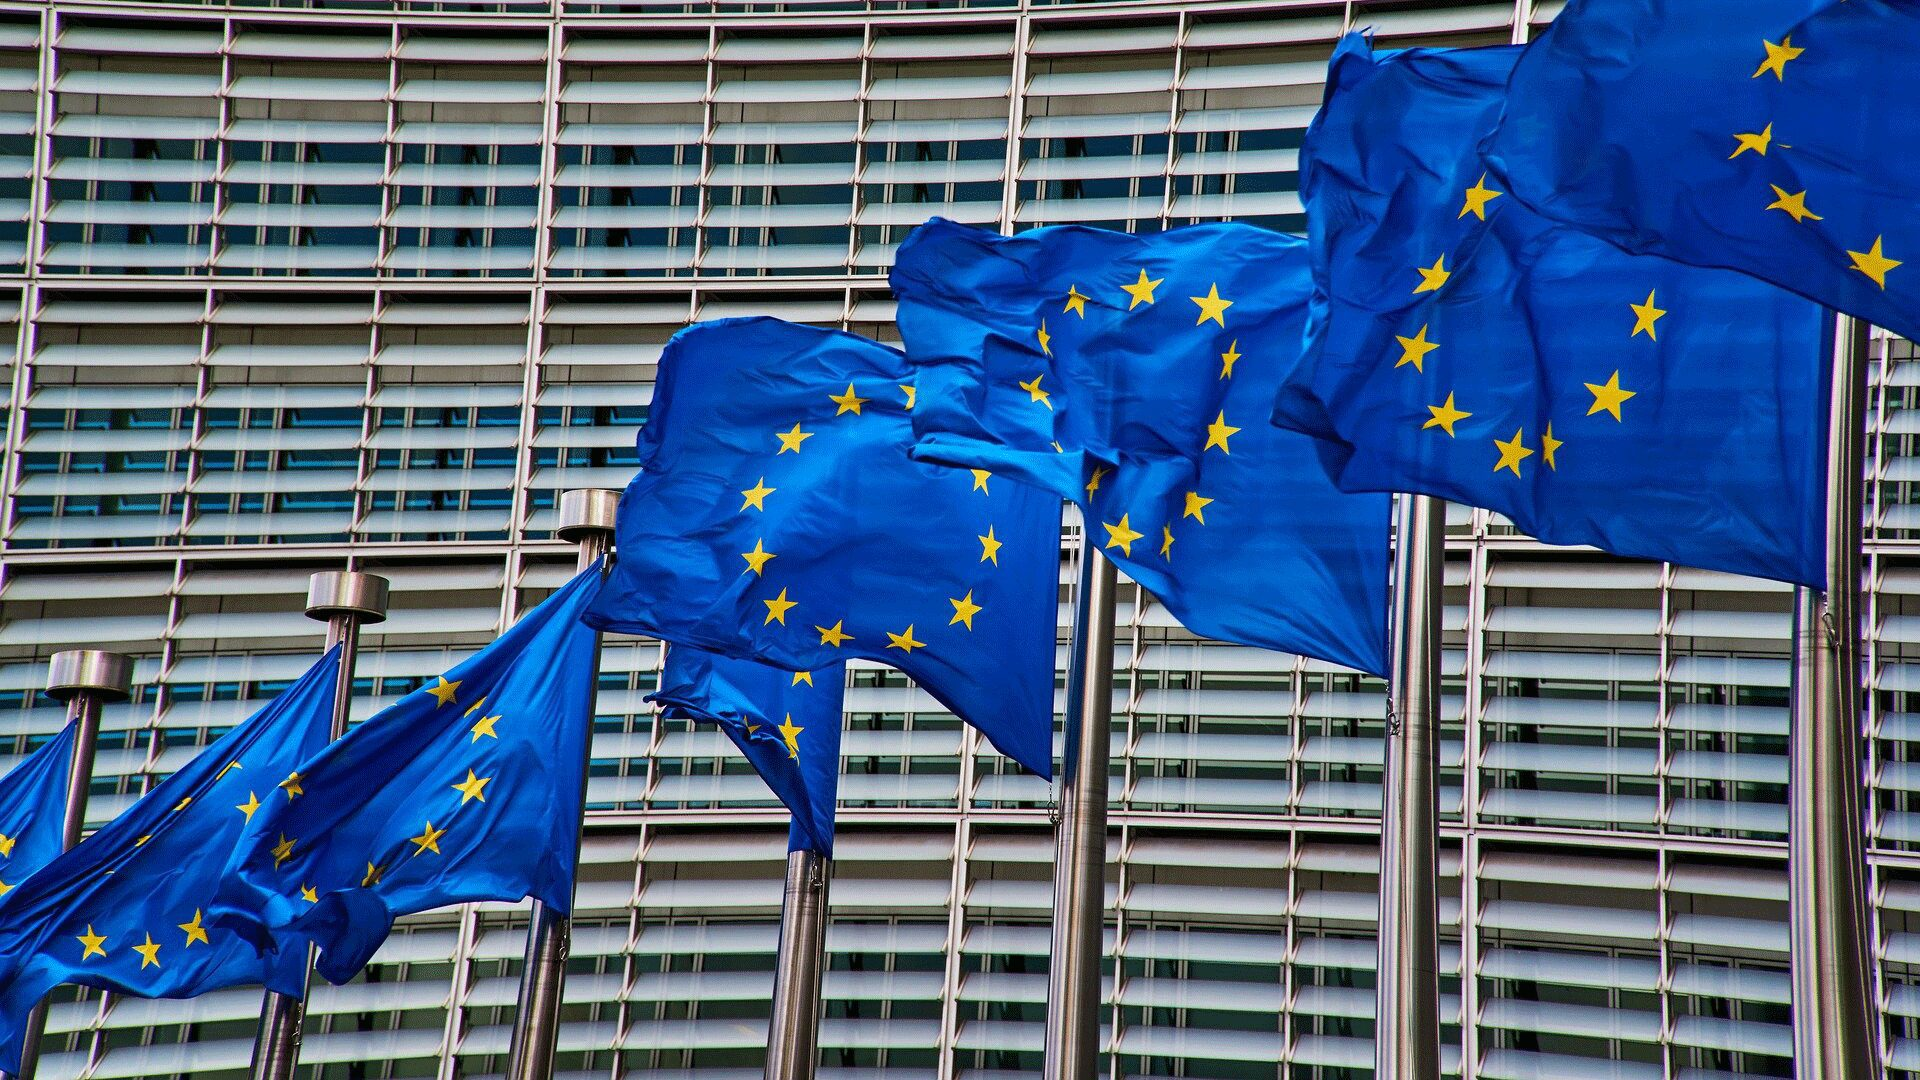 5 things to look out for in the European Commission's new work programme